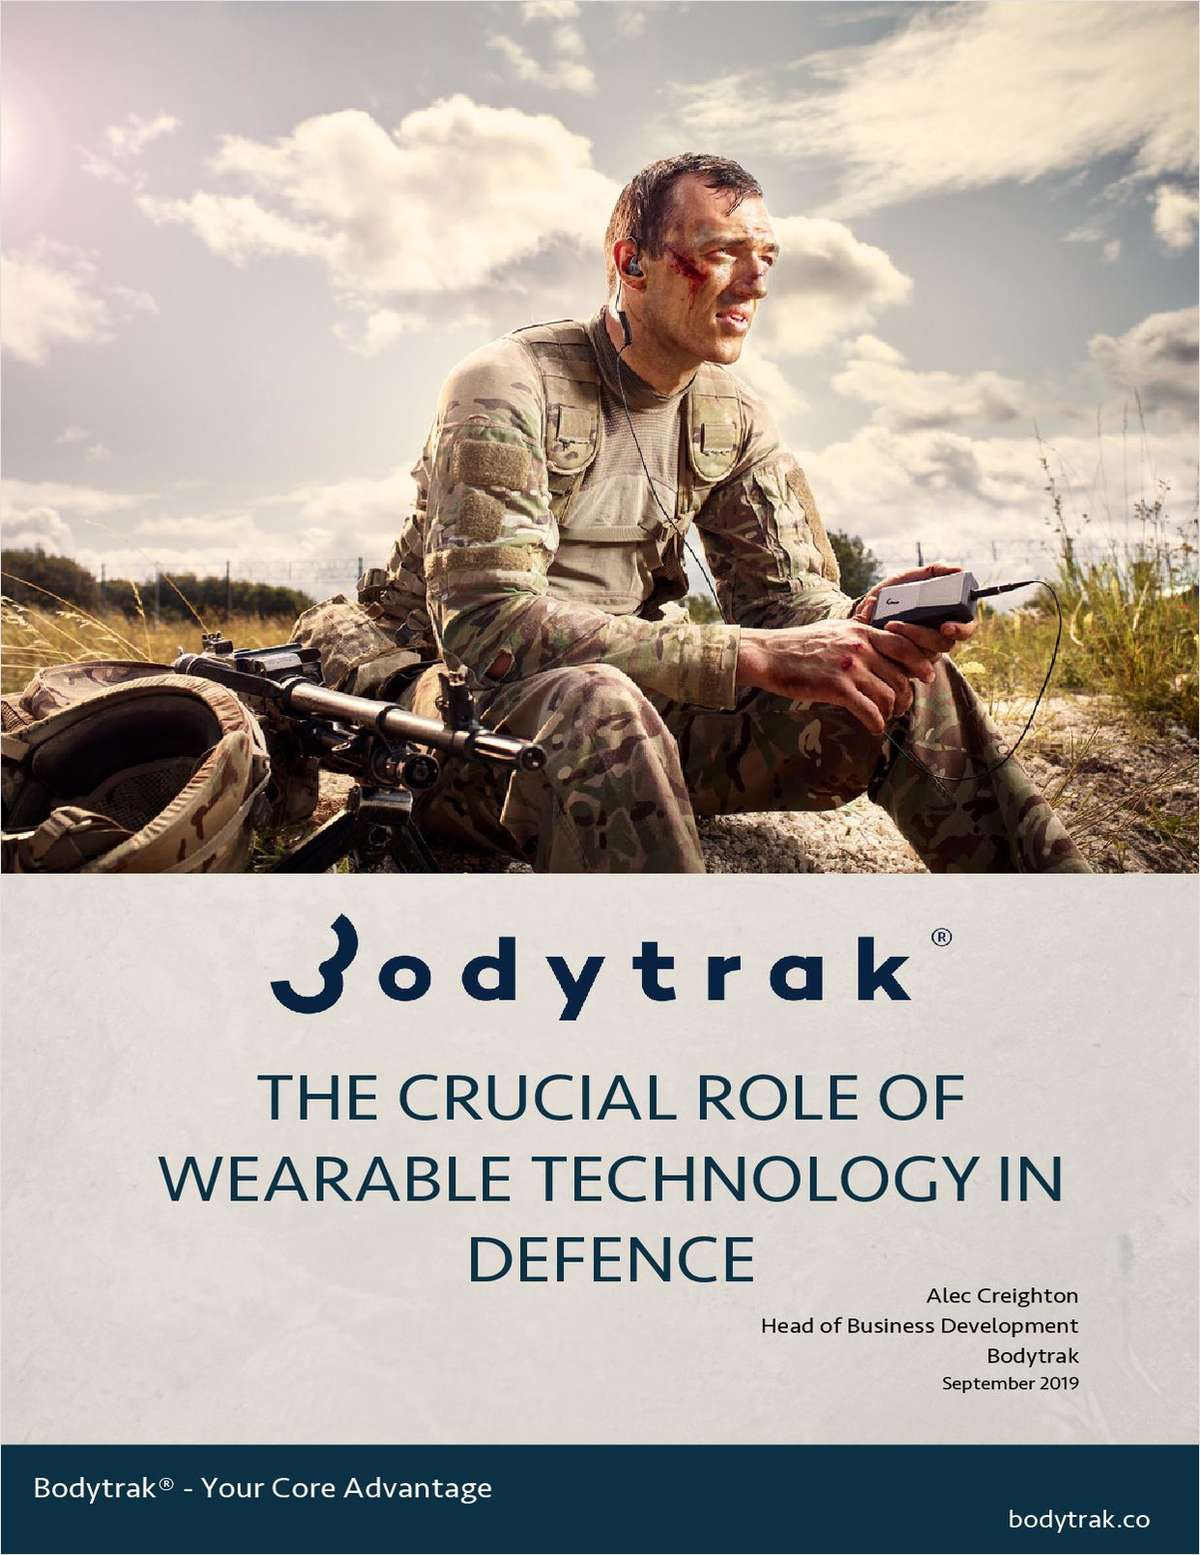 The Crucial Role of Wearable Technology in Defence